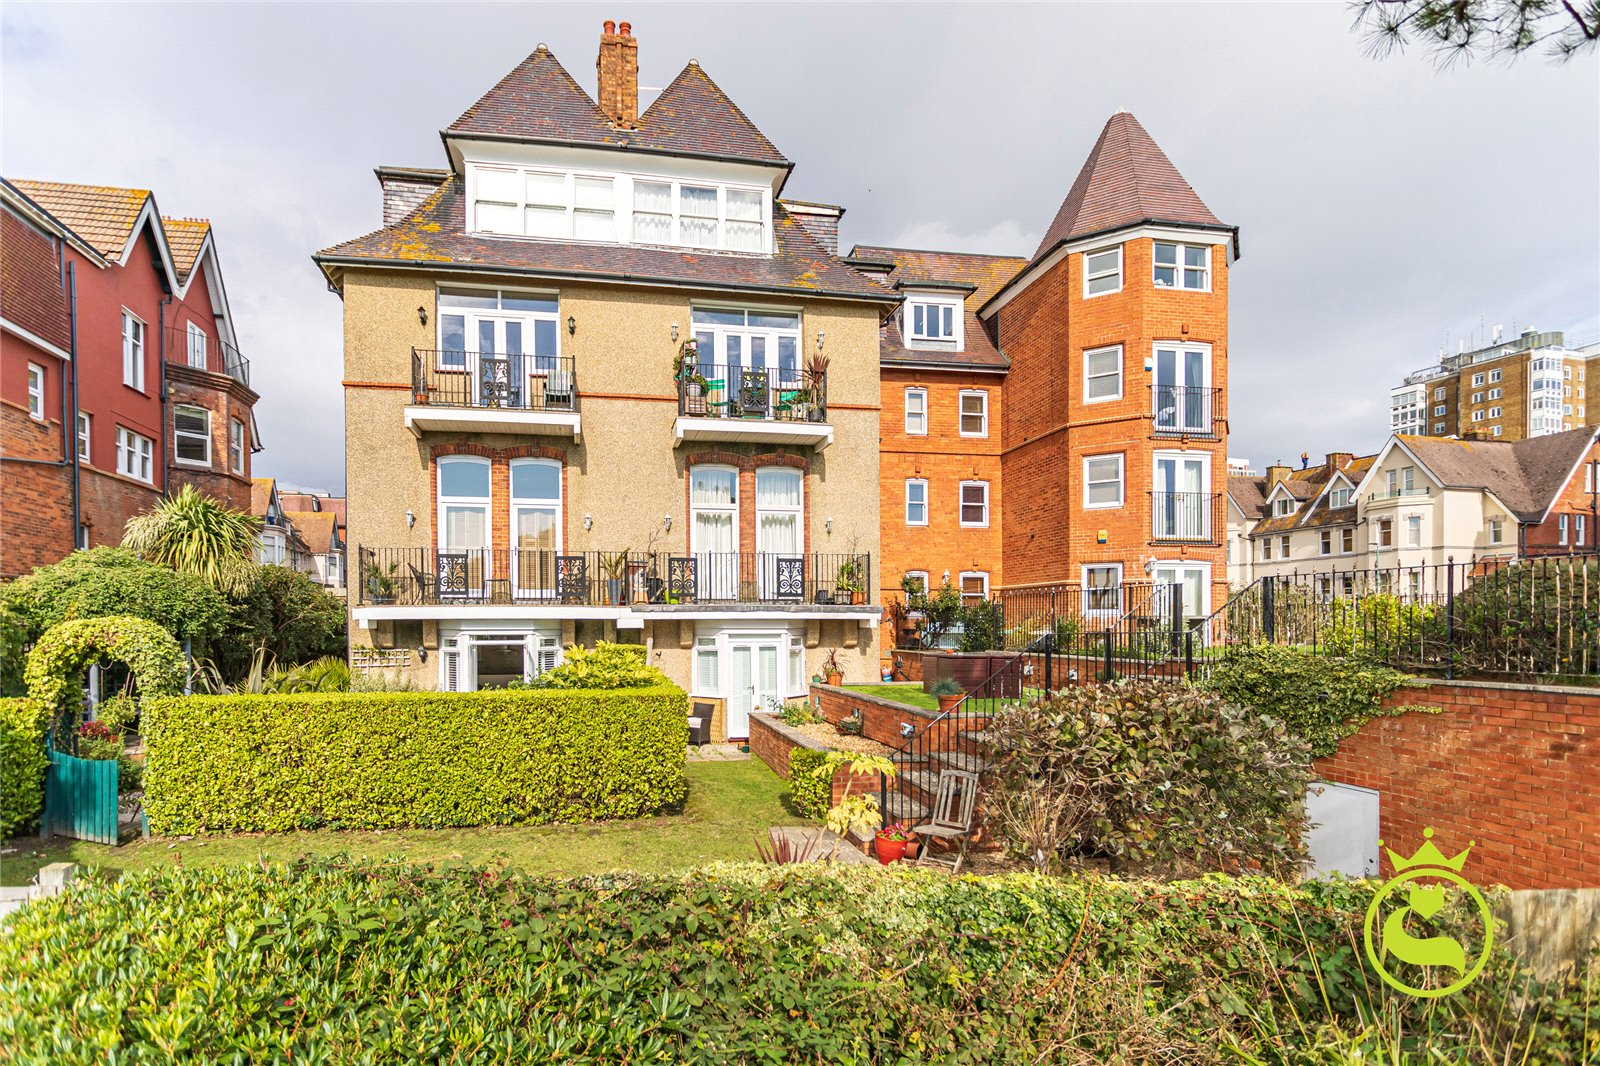 2 bed apartment for sale in West Cliff Gardens, Bournemouth, BH2